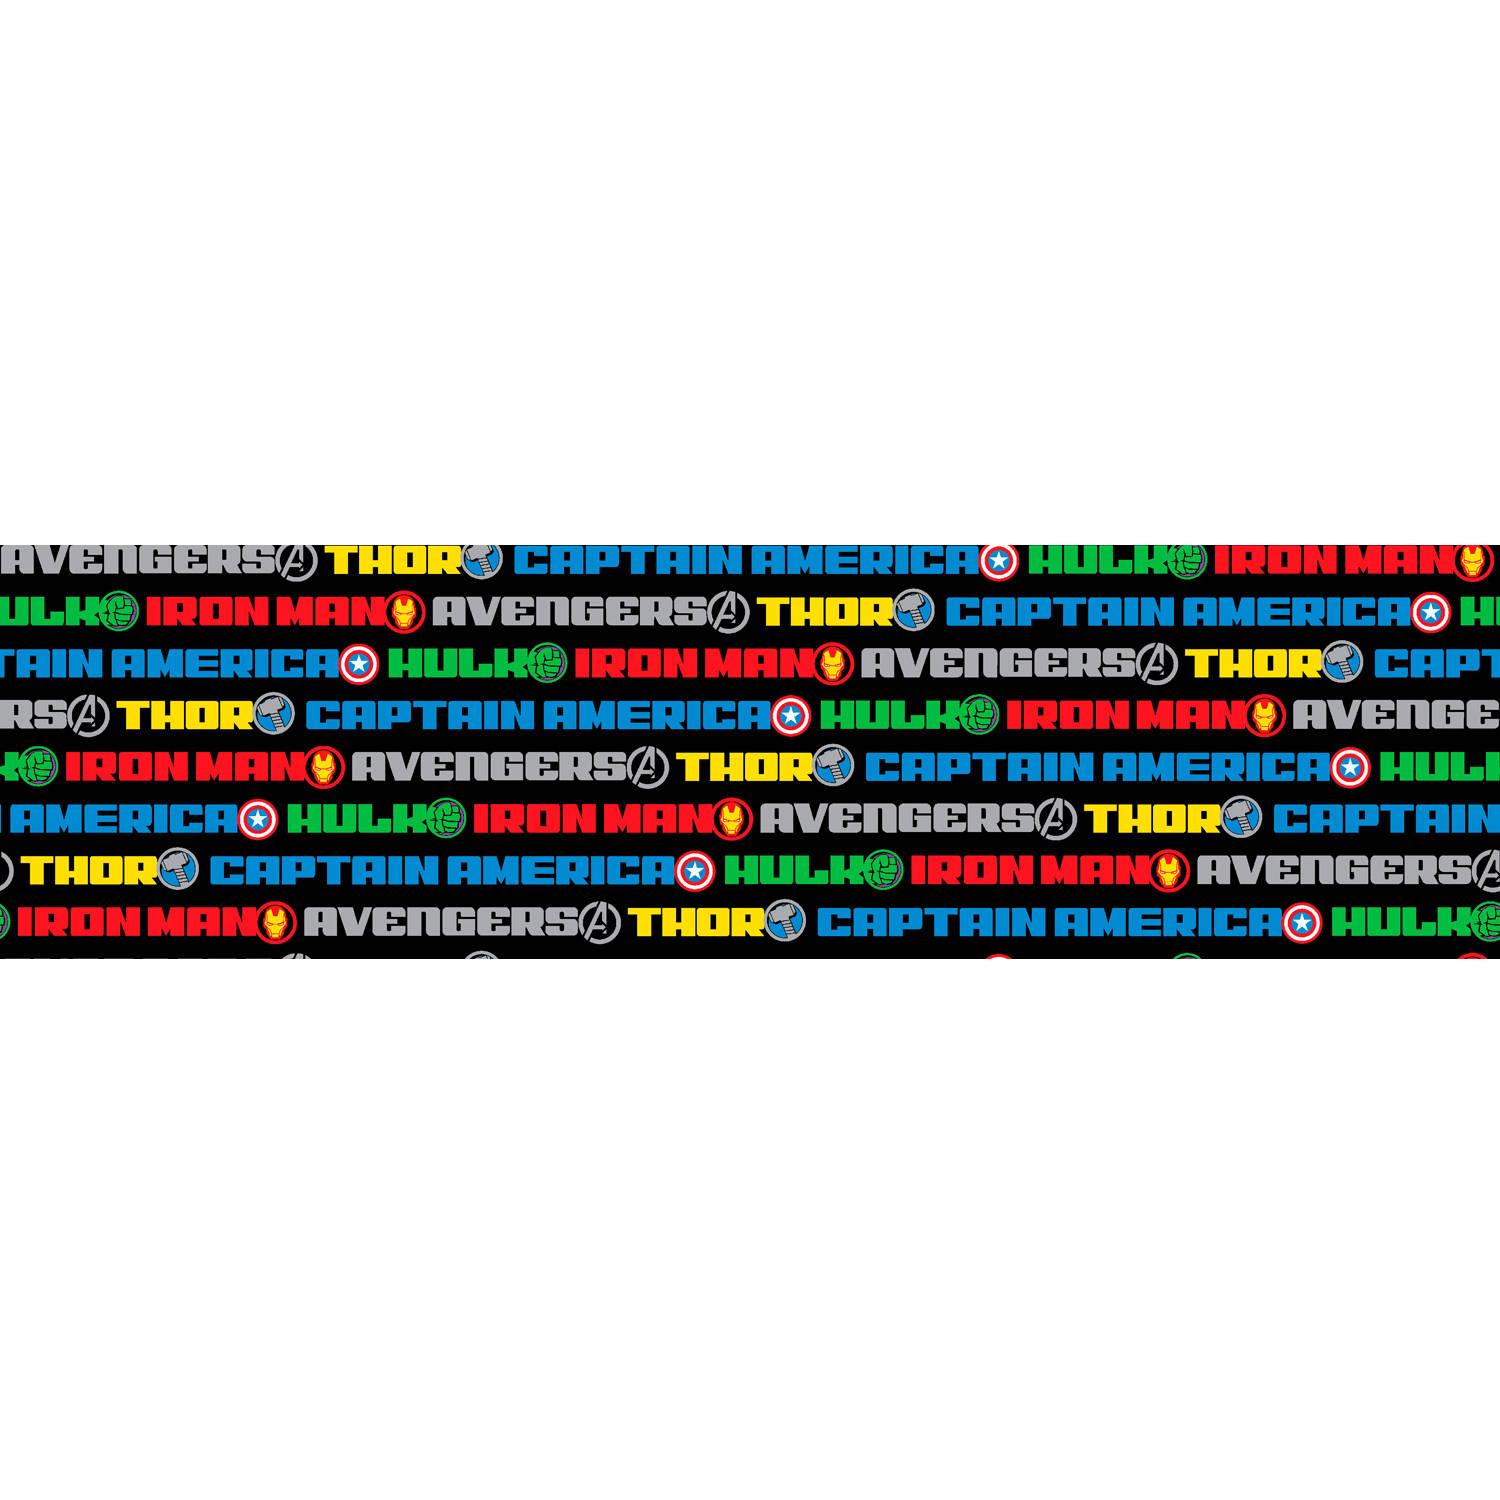 "Marvel Avengers Name Stripe, Flannel, Multi-Colored, 42/43"" Width, Fabric by the Yard"